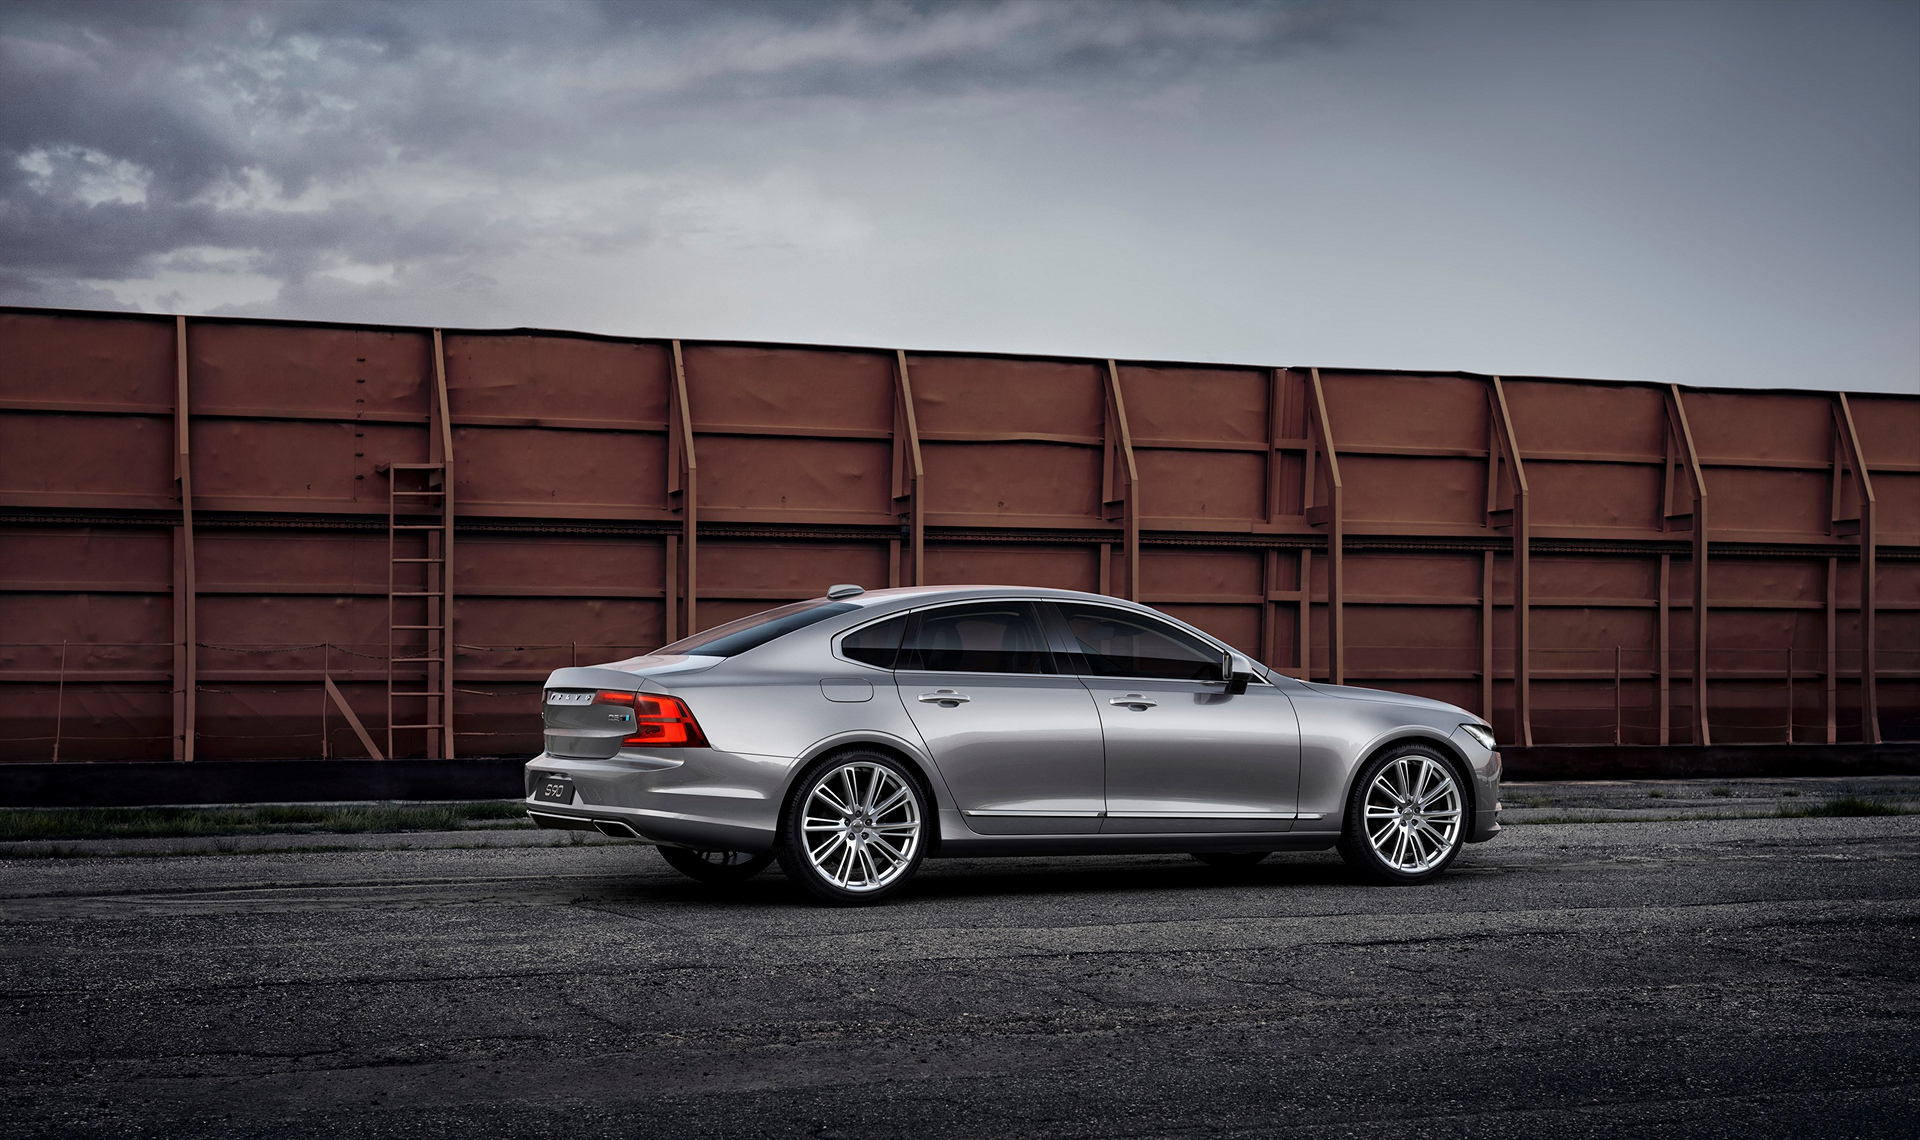 New Polestar performance package now available for the Volvo S90 and V90 © Zhejiang Geely Holding Group Co., Ltd